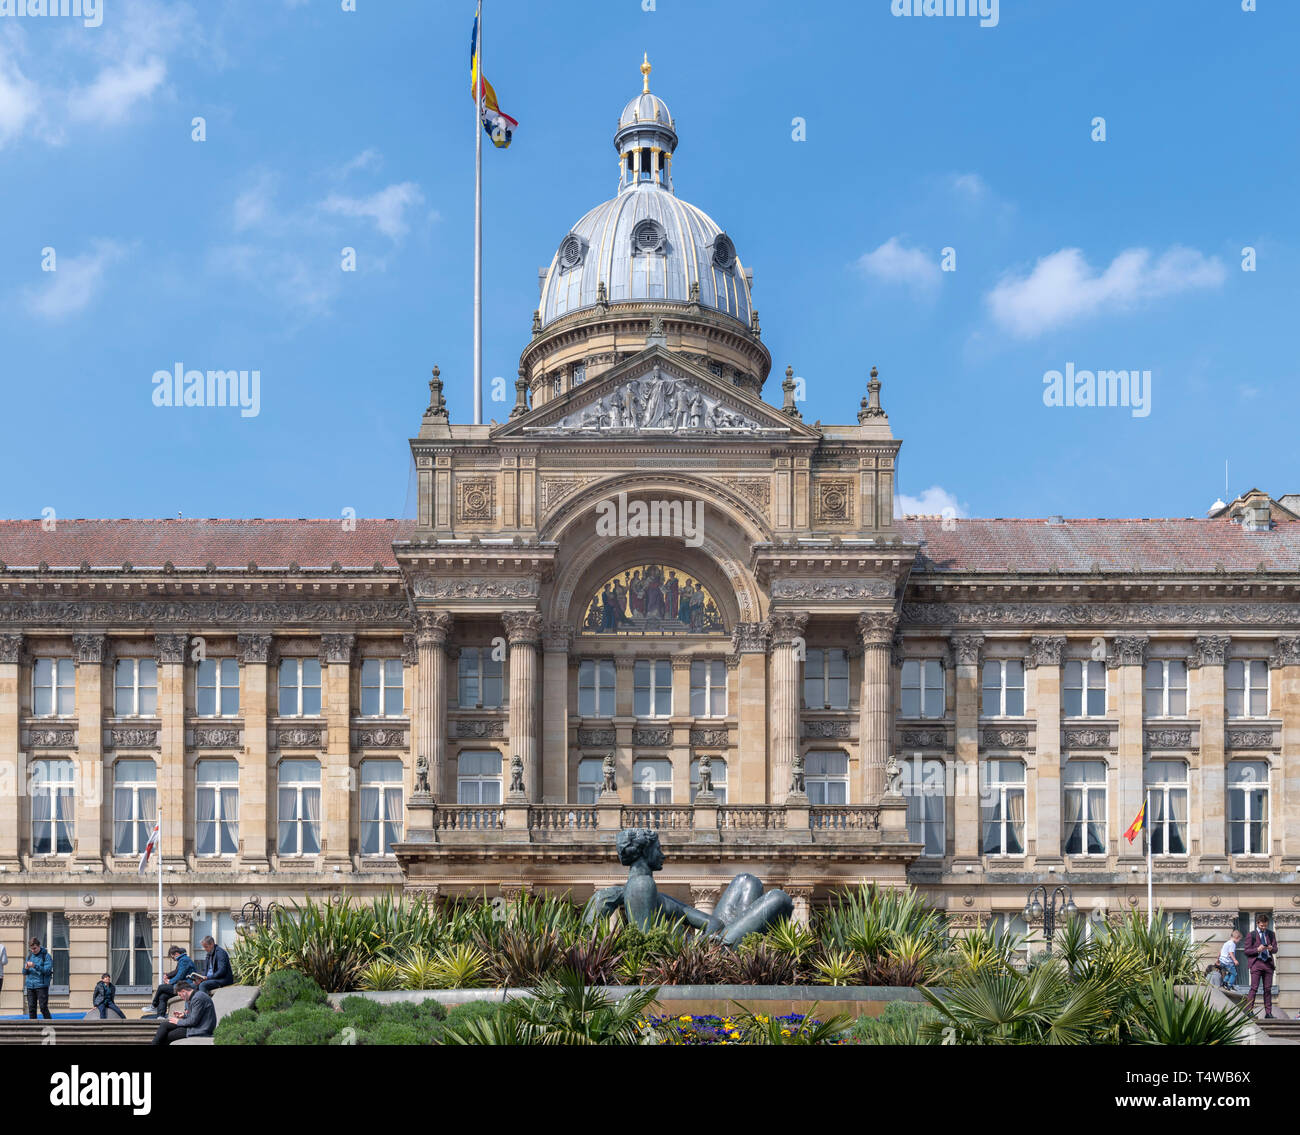 Birmingham City Council House, the seat of local government on Victoria Square, Birmingham, West Midlands, England, UK - Stock Image